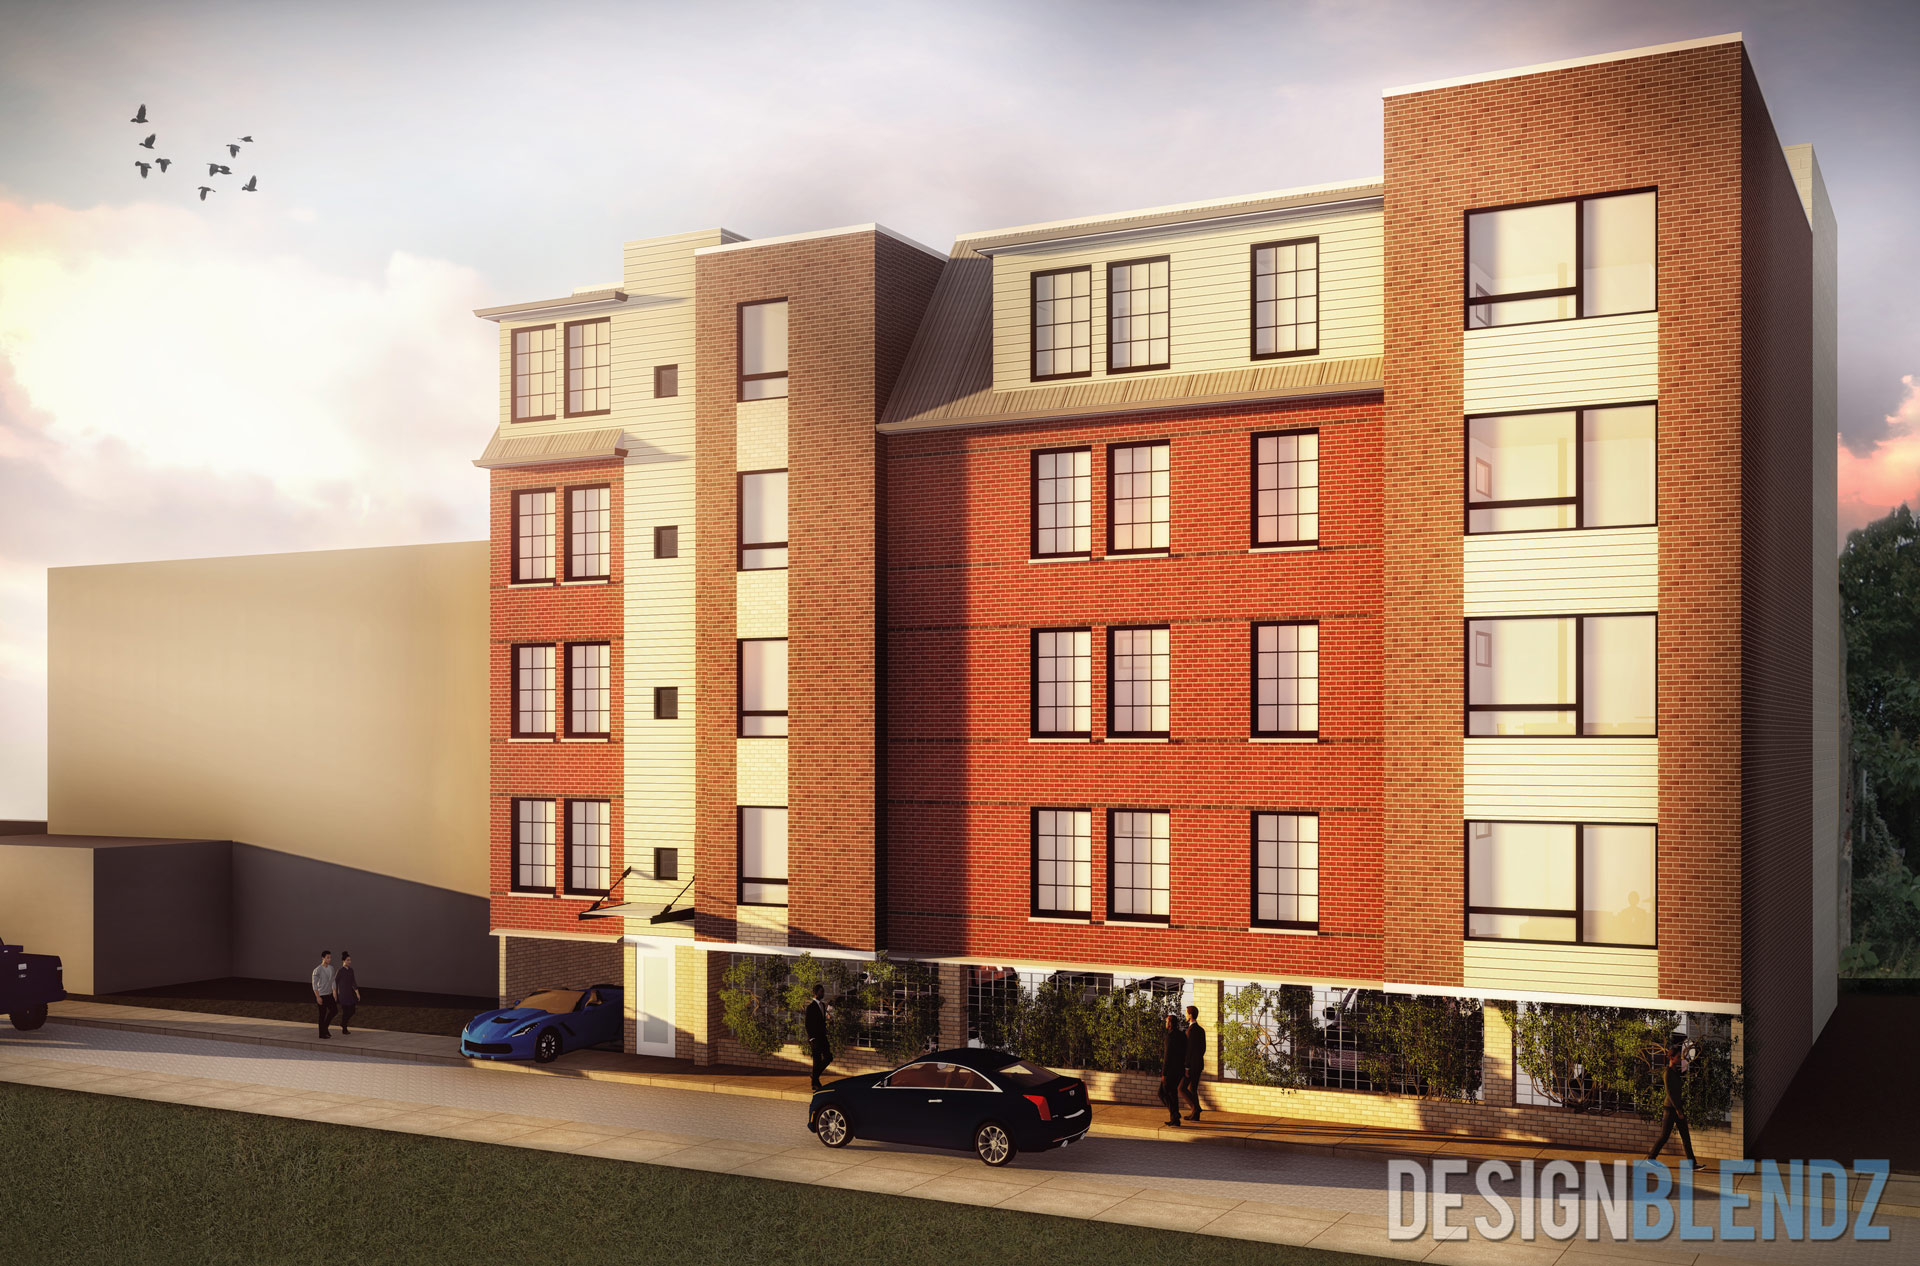 20 Unit Multi-family design with parking